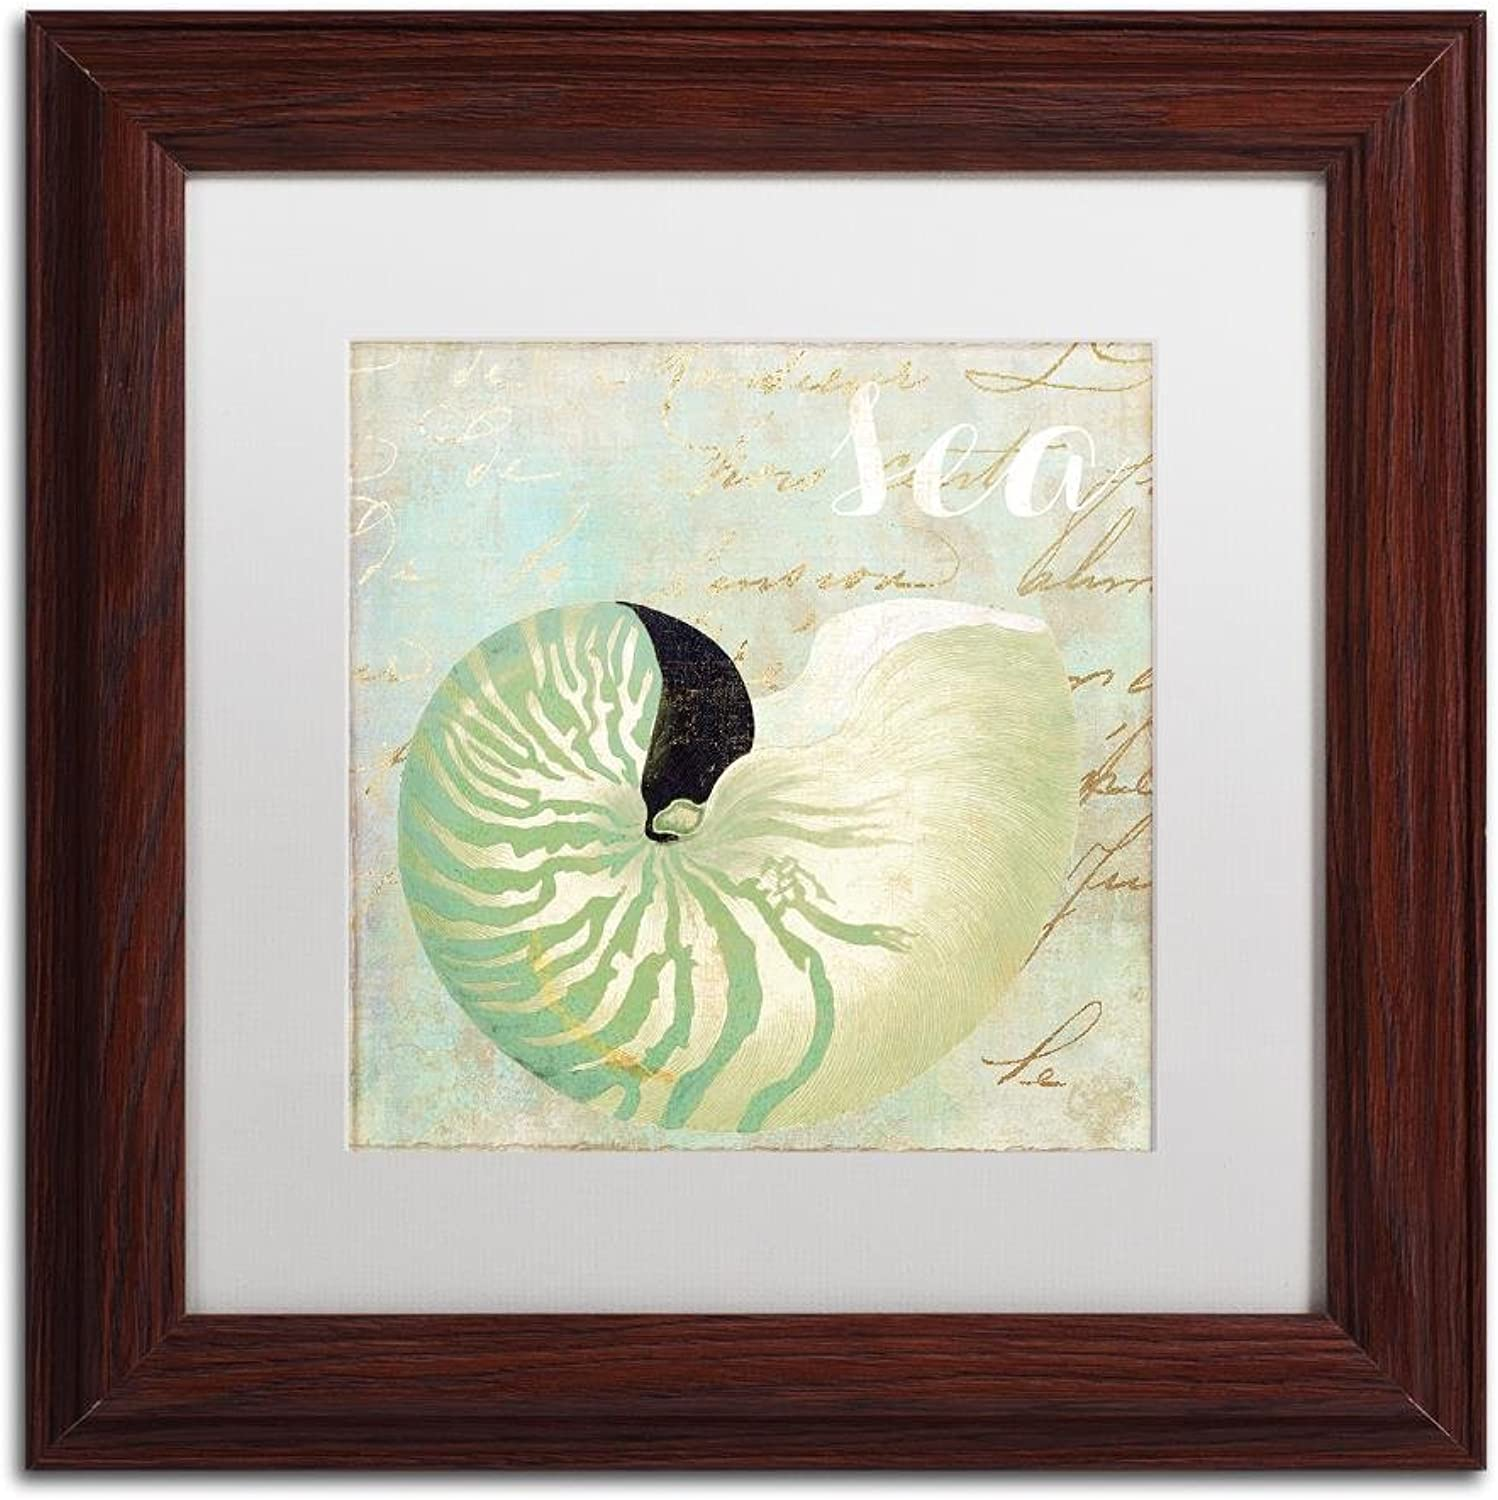 Trademark Fine Art ALI4645W1111MF Turquoise Beach I by color Bakery, White Matte, Wood Frame 11x11